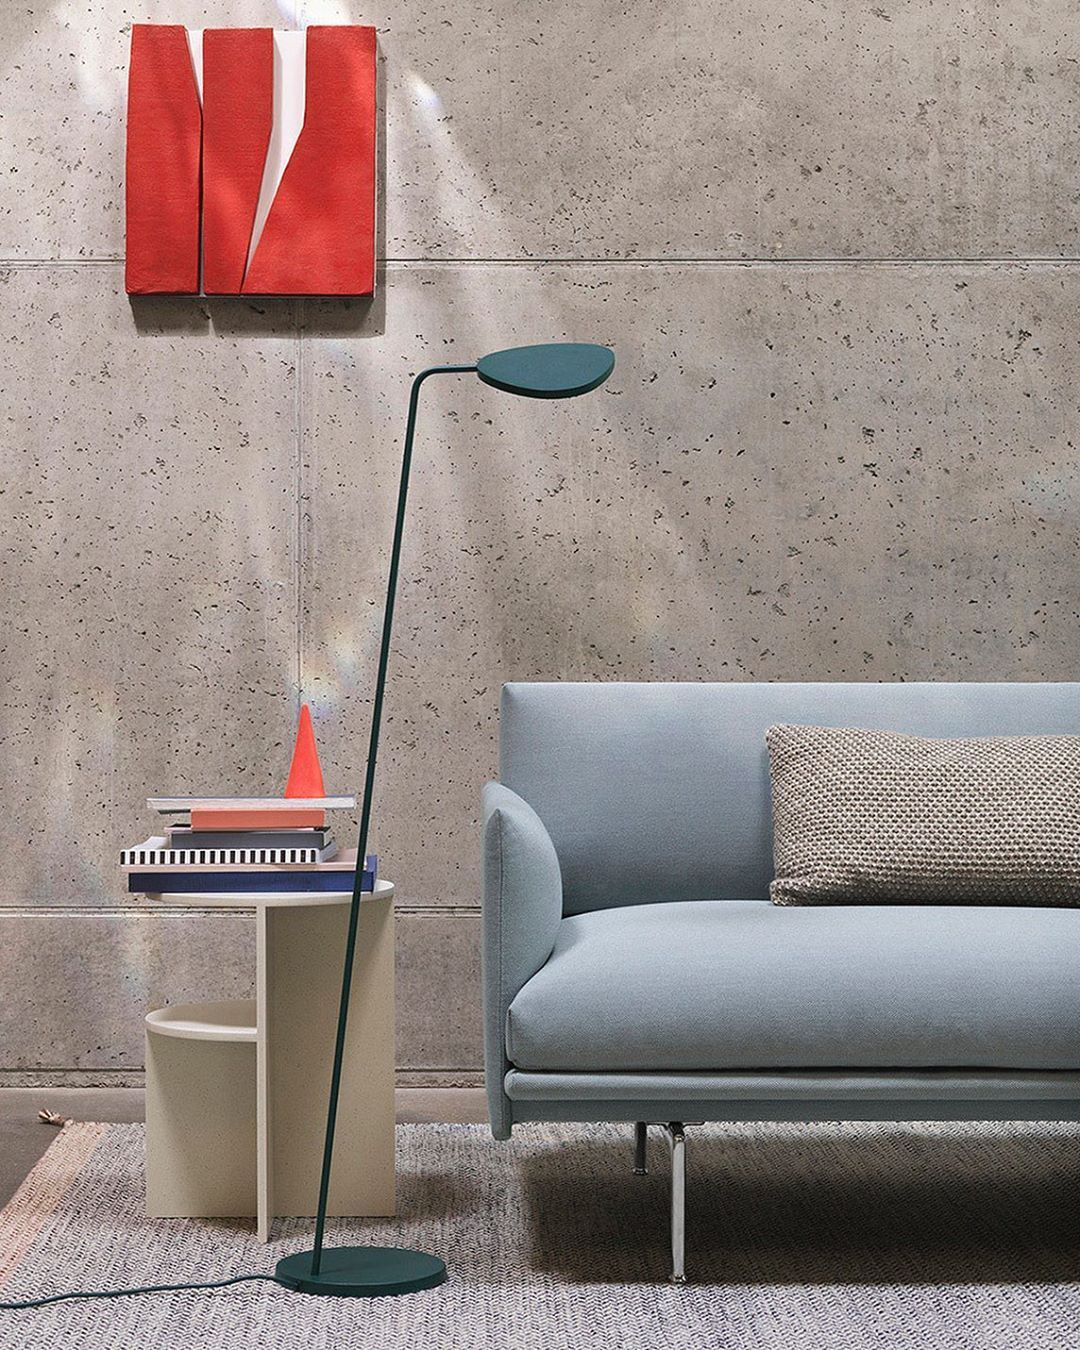 Muuto On Instagram Introducing A New Color Of The Leaf Floor Lamp Dark Green Also Available Now For The Leaf Table Lamp Muuto Newpe In 2020 Floor Lamp Lamp Muuto